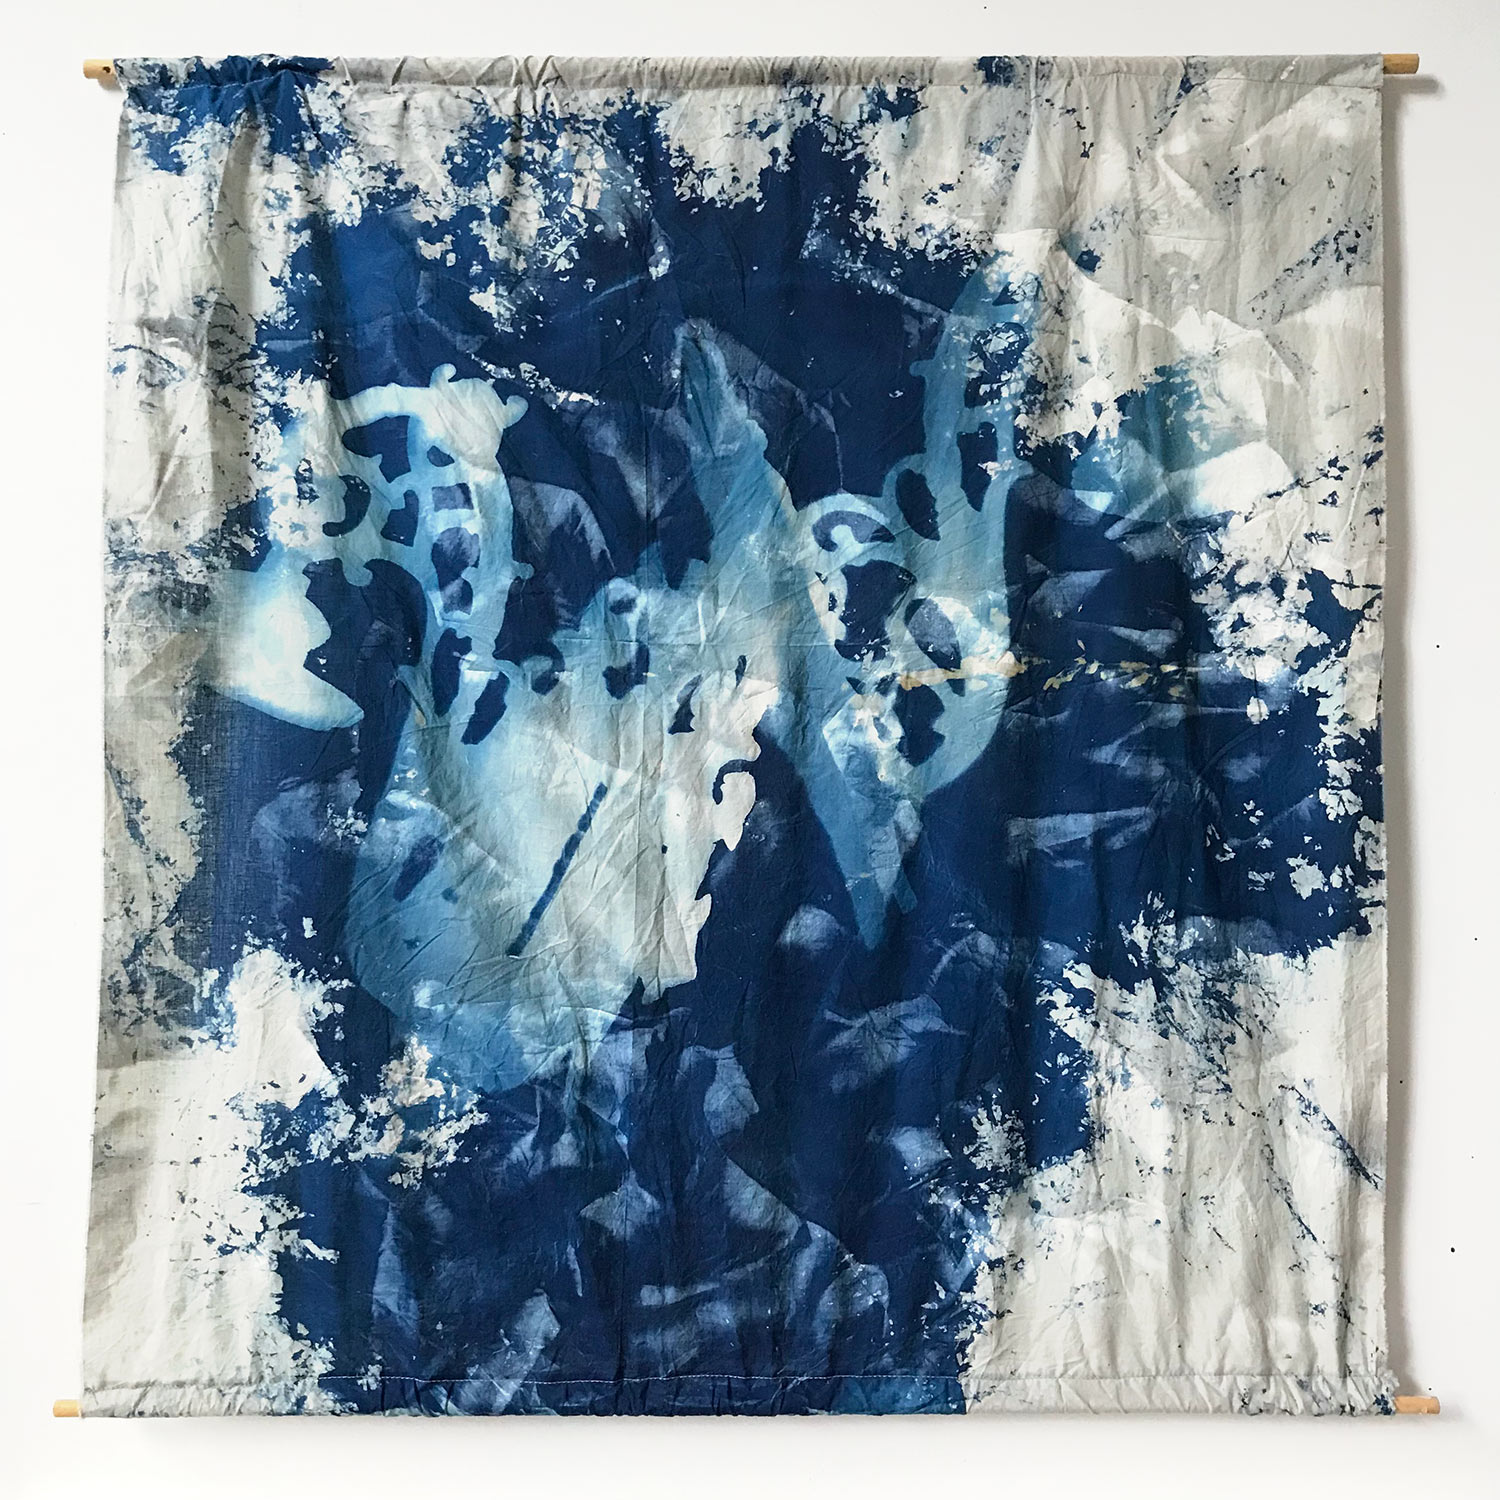 Cyanotype and spray paint on fabric. Made in collaboration with Kate Steciw.